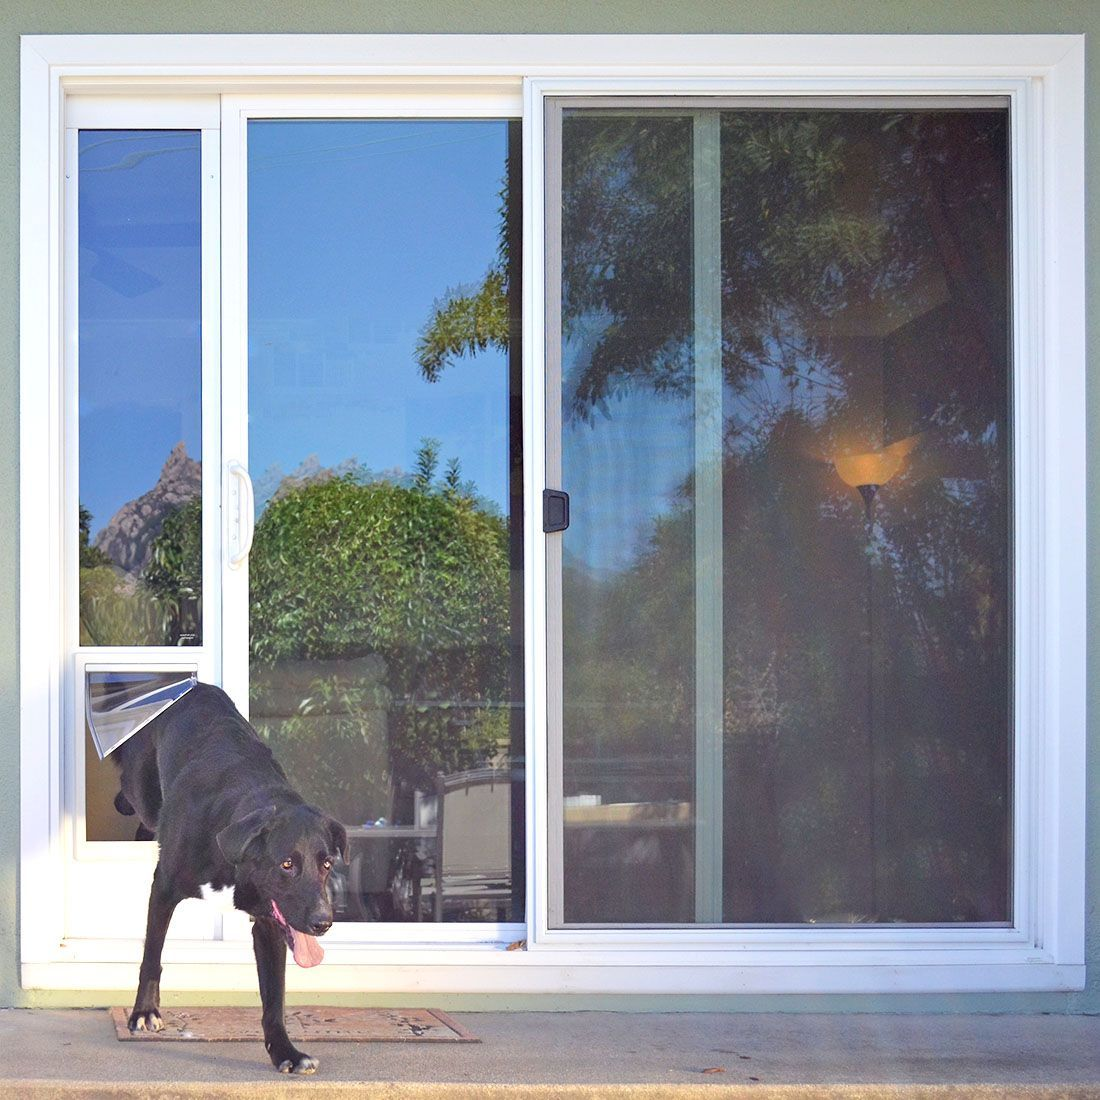 The Ideal Fast Patio Panel Pet Doors Install With No Tools Except The Included Pin Lock Single Pane Glass With Vinyl Flap Prices Vary With Panel Height